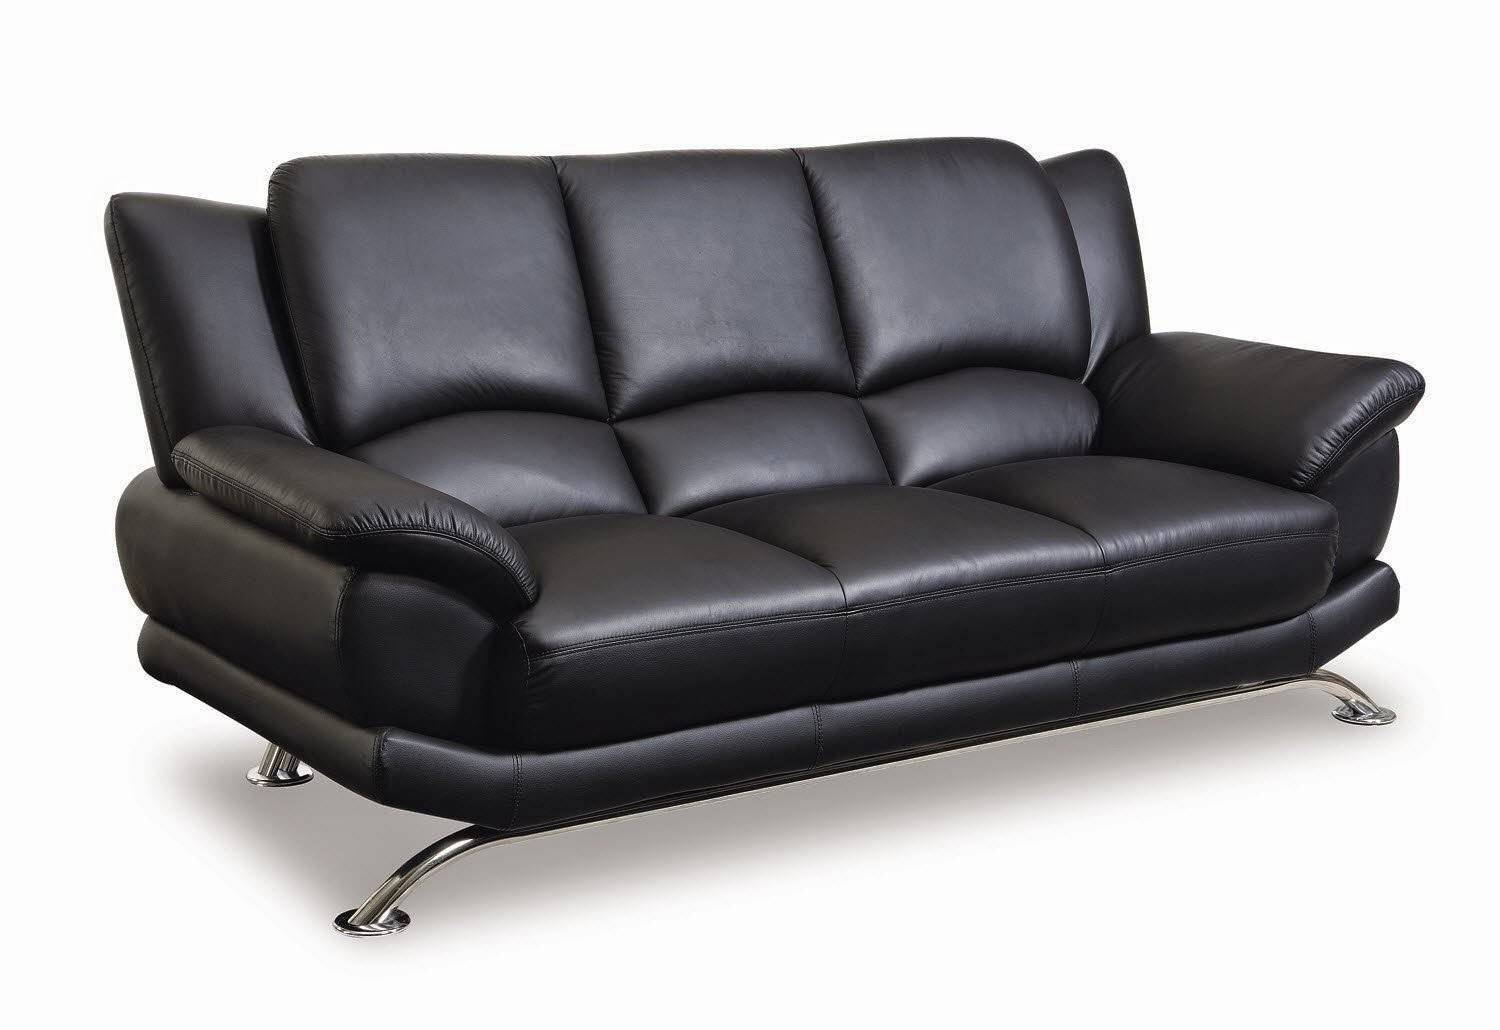 Black Leather Sofa For Contemporary Black Leather Sofas (View 5 of 30)